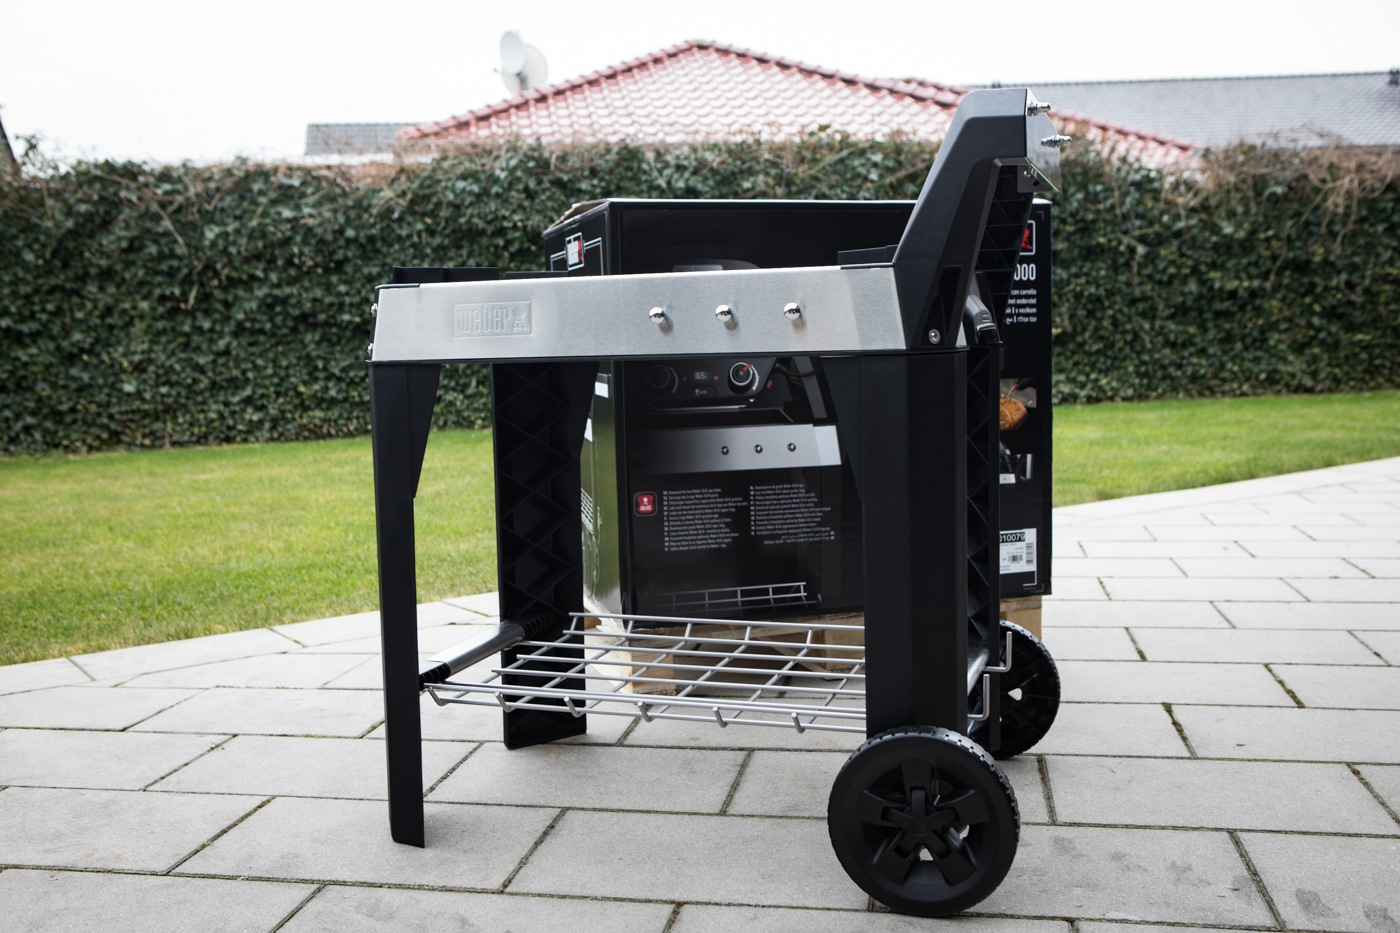 Weber Outdoor Küche Reinigen : Weber gasgrill summit e black amazon garten